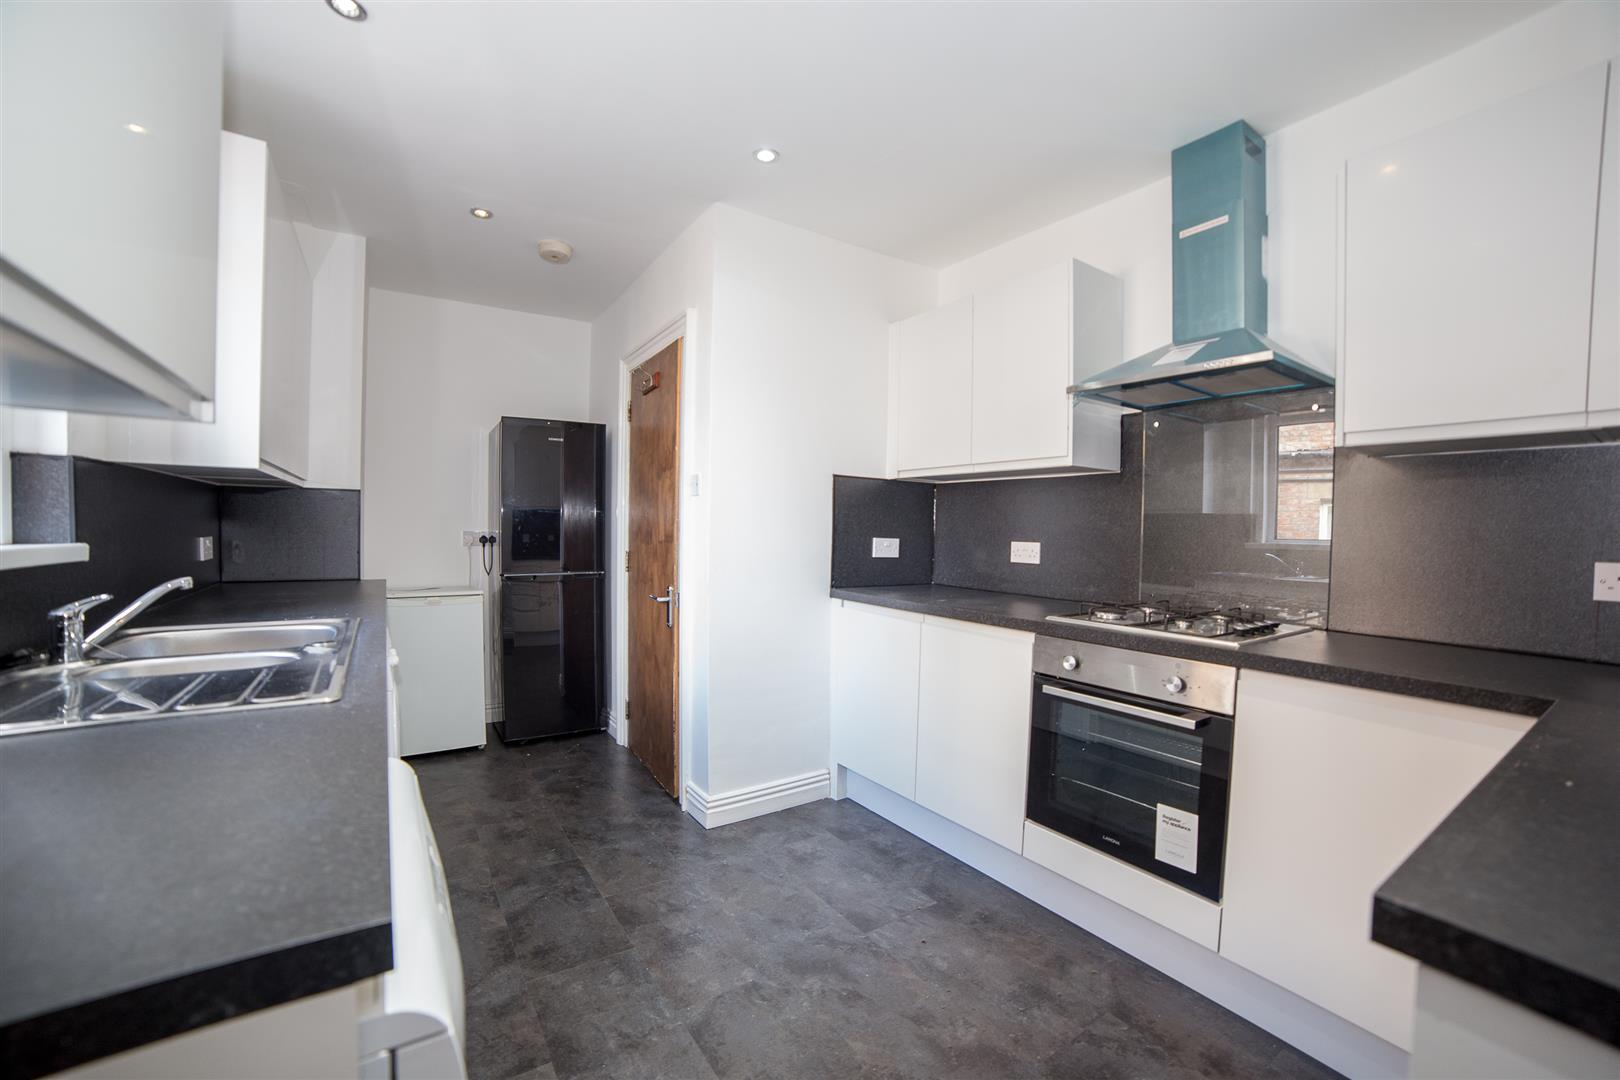 7 bed maisonette to rent in Newcastle Upon Tyne, NE2 1LB 1